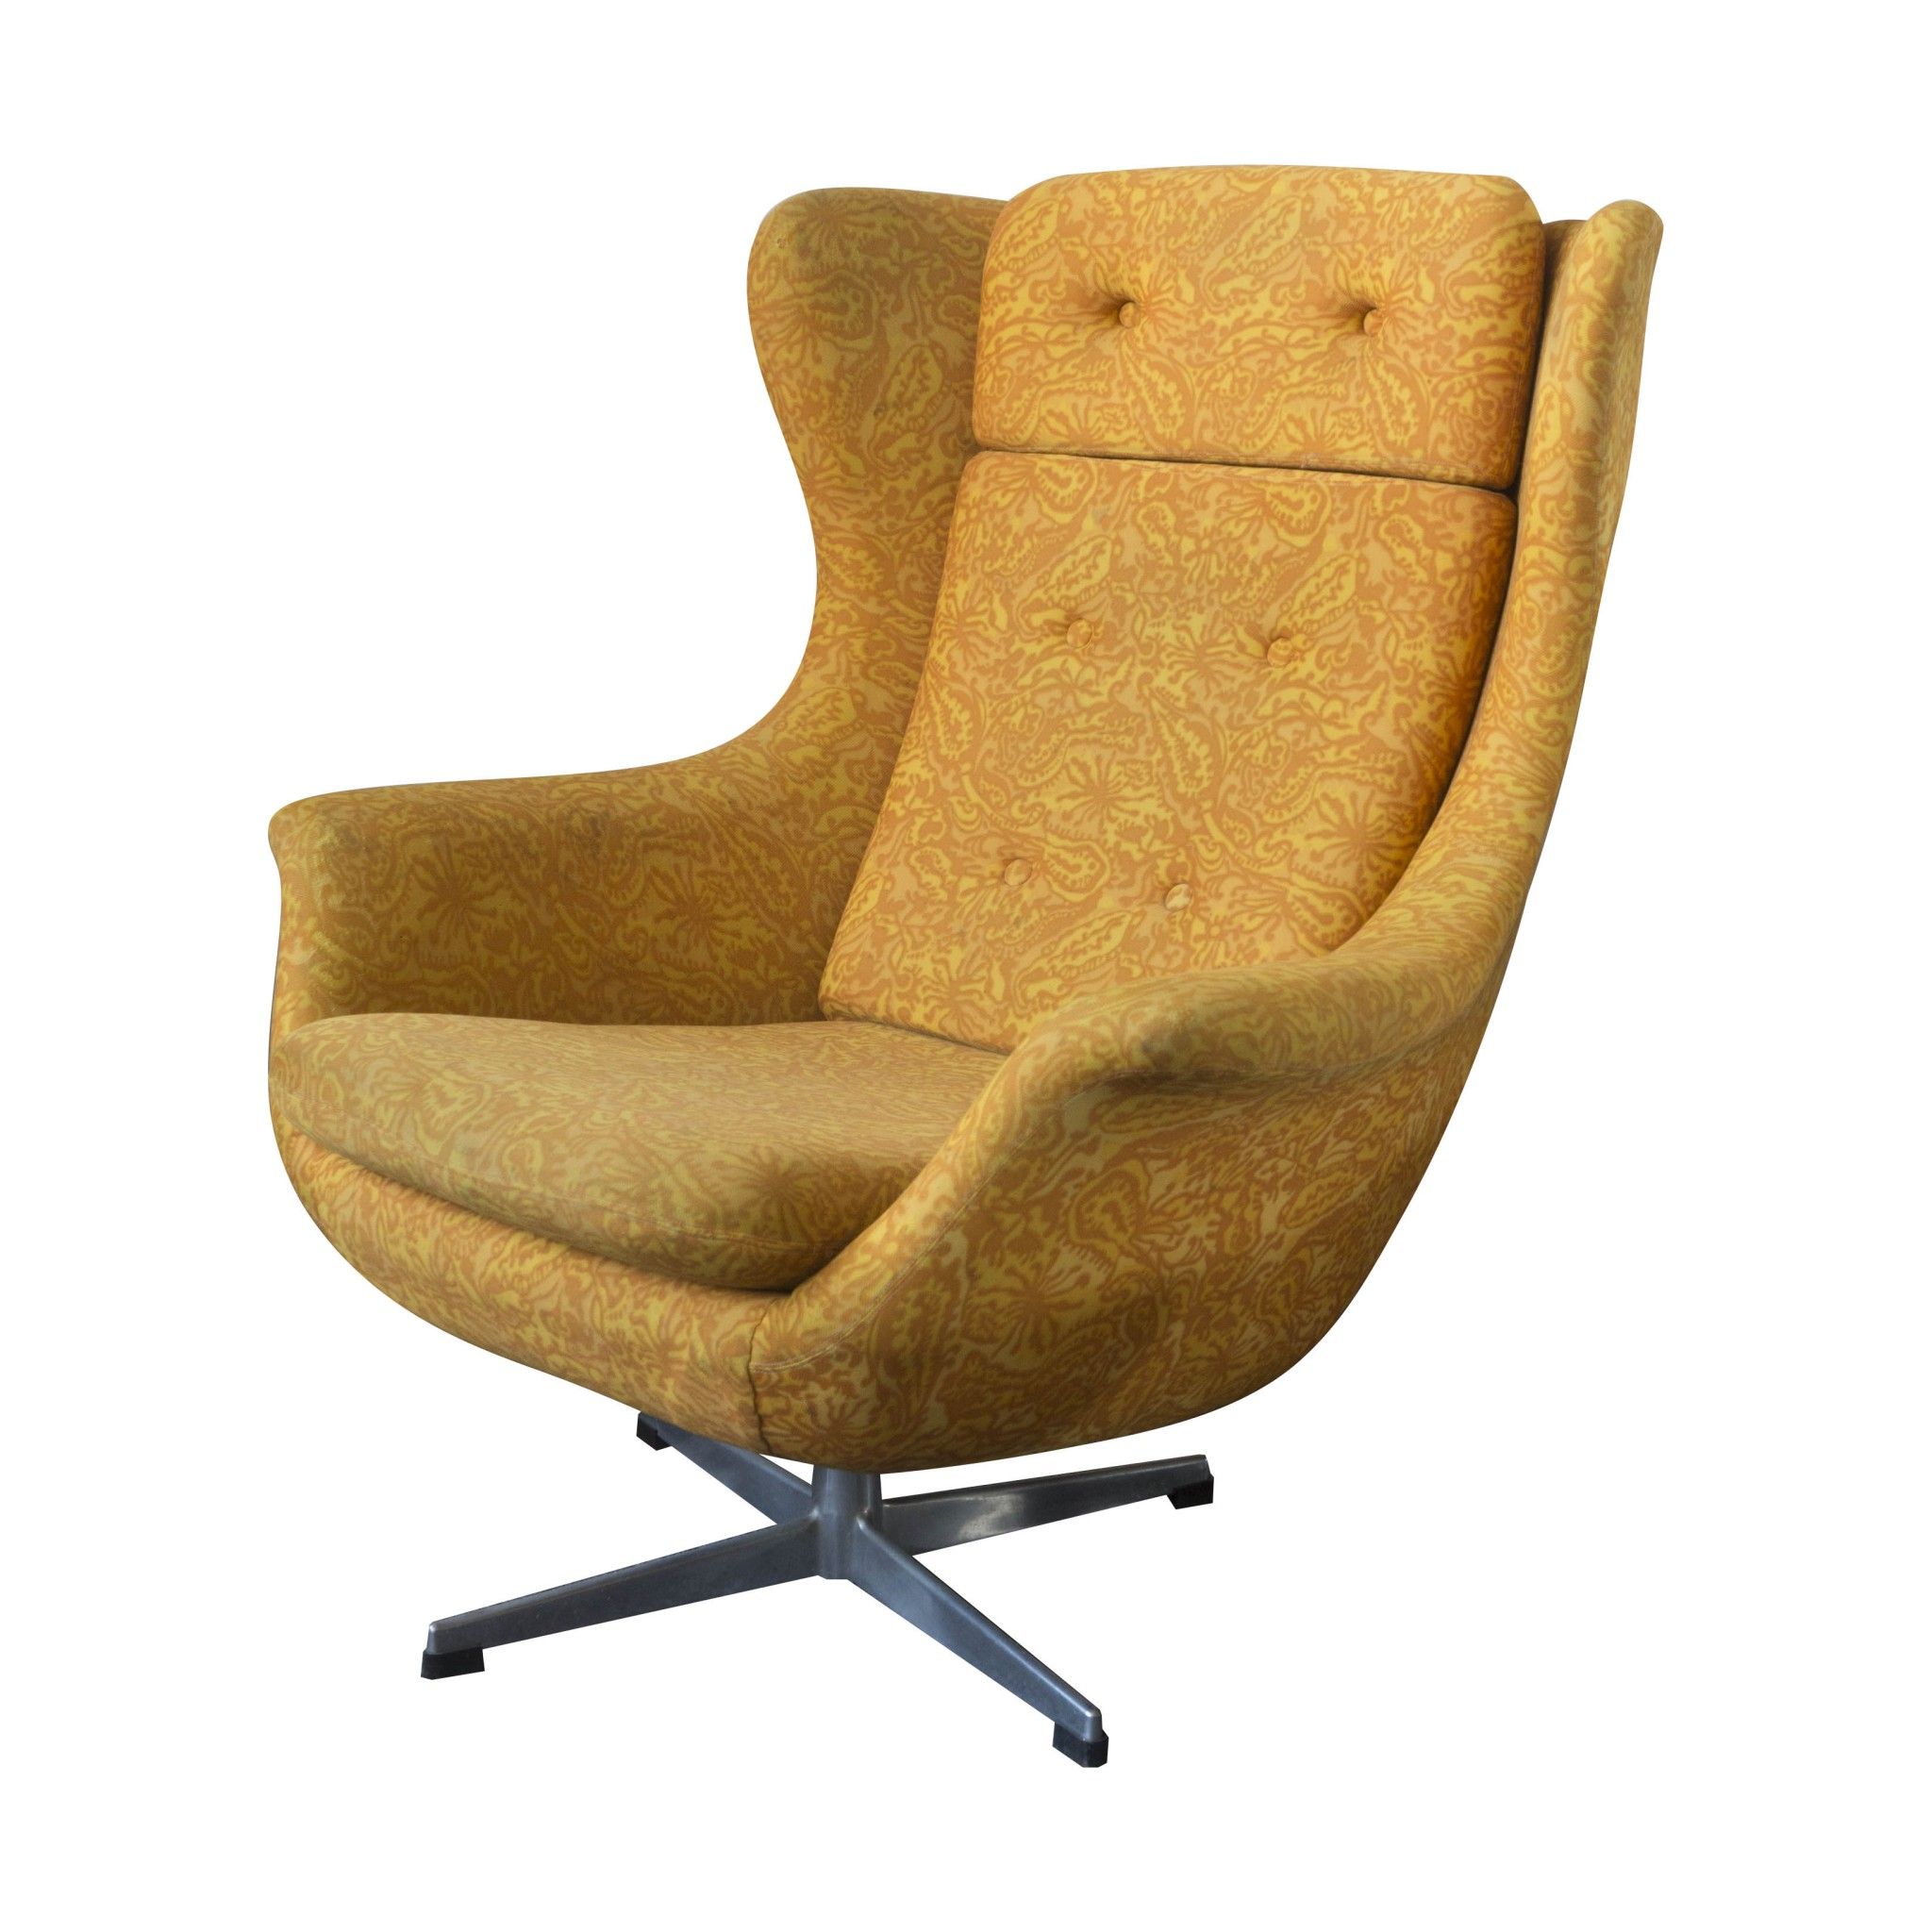 Image of: Midcentury Modern Swivel Armchair Up Zavody Czechoslovakia Your20th Com Wholesale Of The Antique Furniture Your20th Com